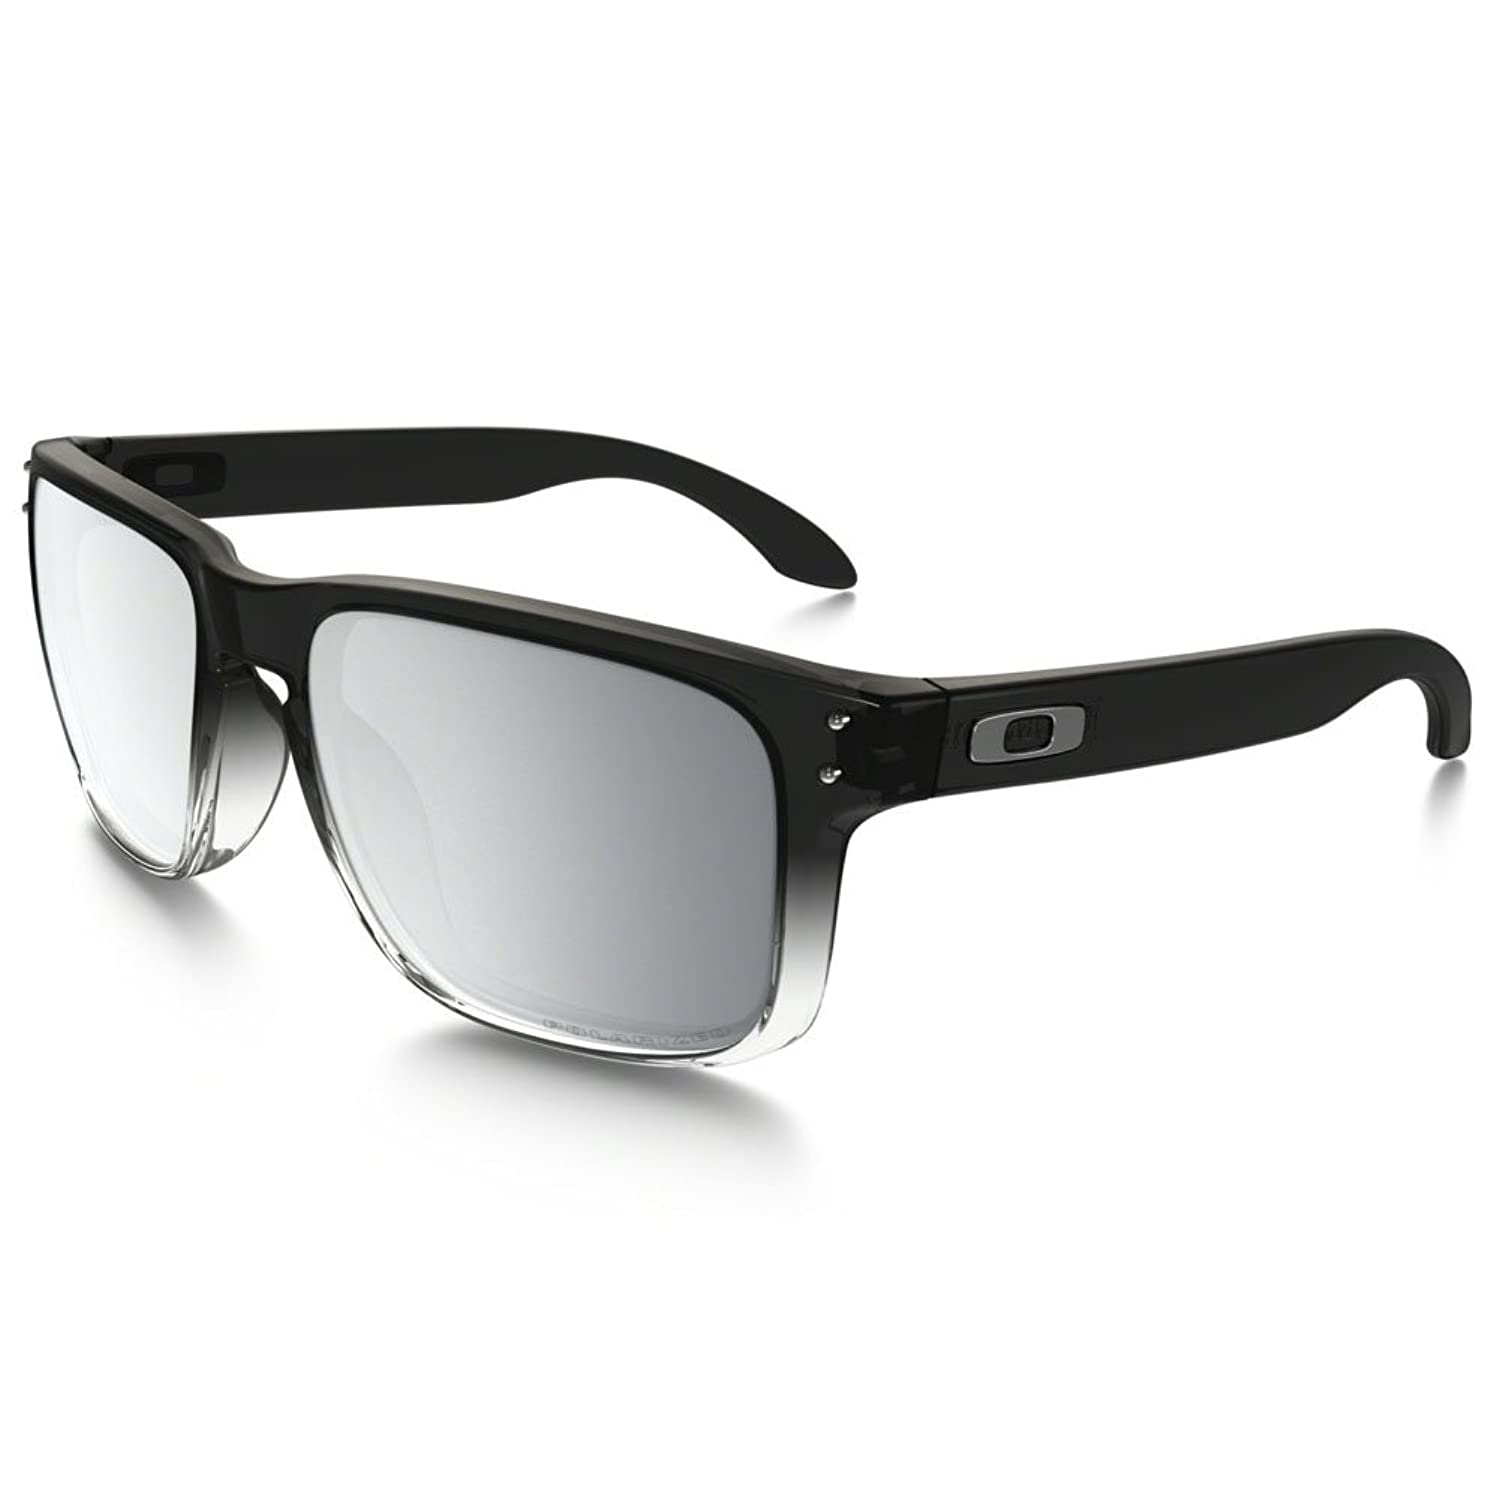 oakley sunglasses cheap usa  amazon: oakley holbrook sunglasses, dark ink fade/chrome iridium polarized, one size: clothing